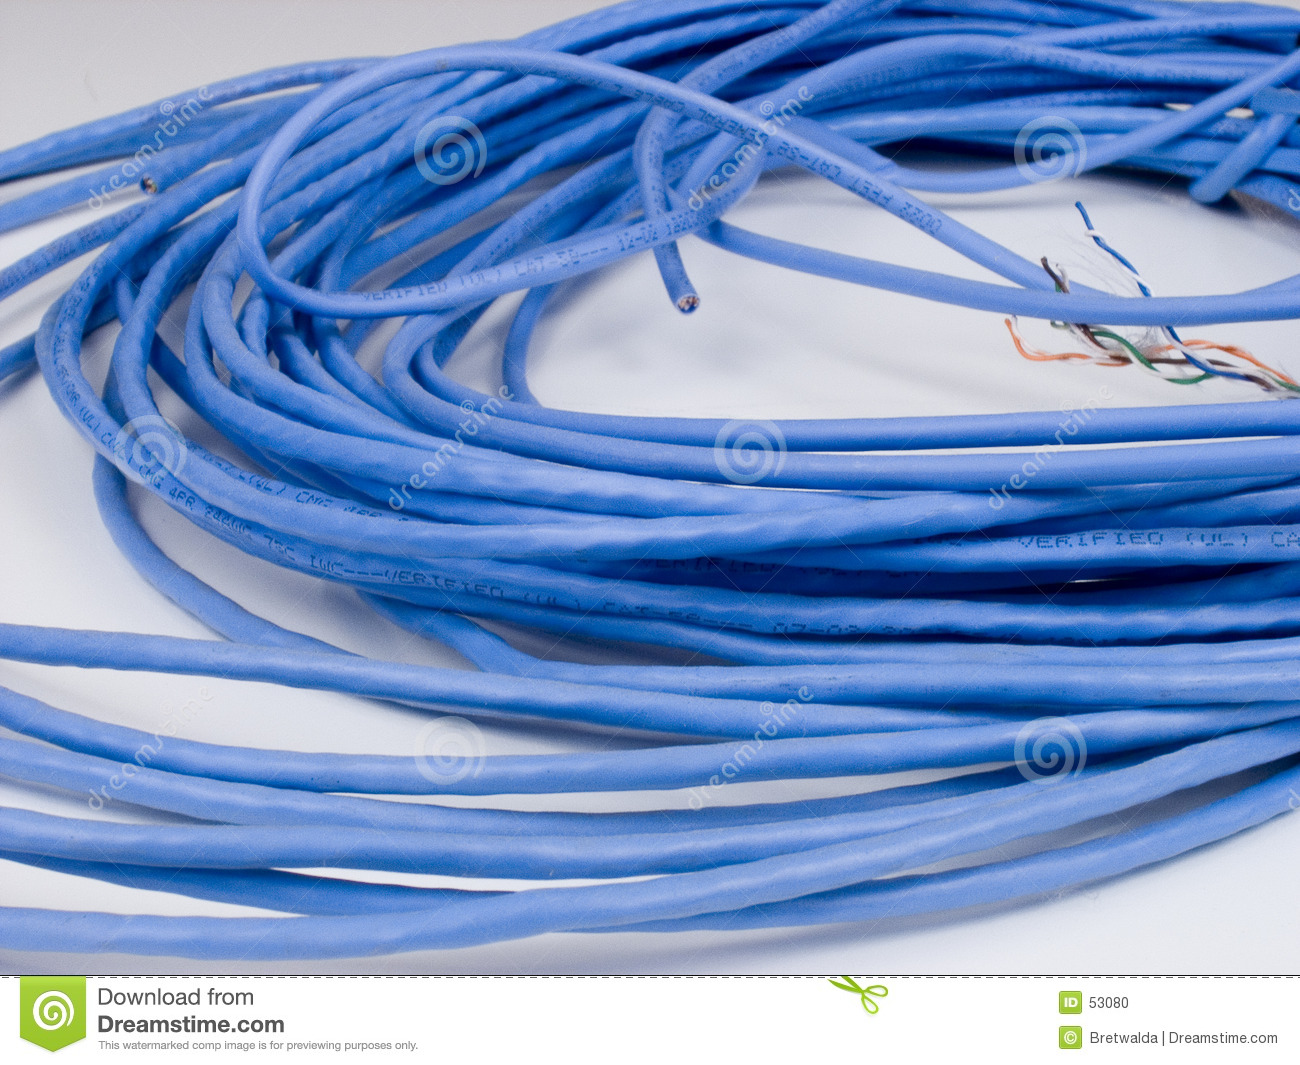 Cat5cable1